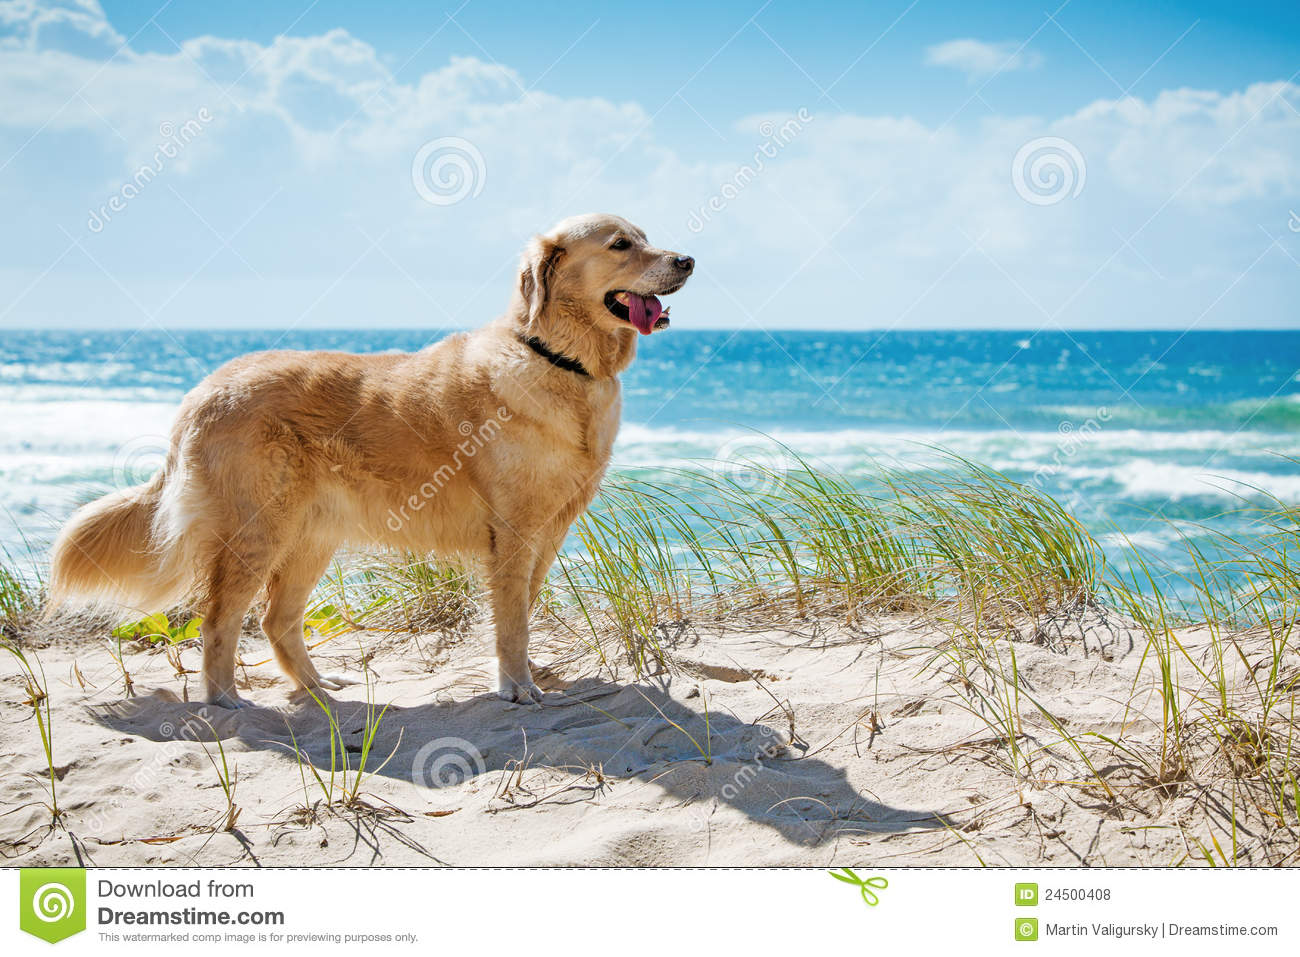 Royalty Free Stock Photos: Golden retriever on a sandy dune ...: www.dreamstime.com/royalty-free-stock-photos-golden-retriever-sandy...